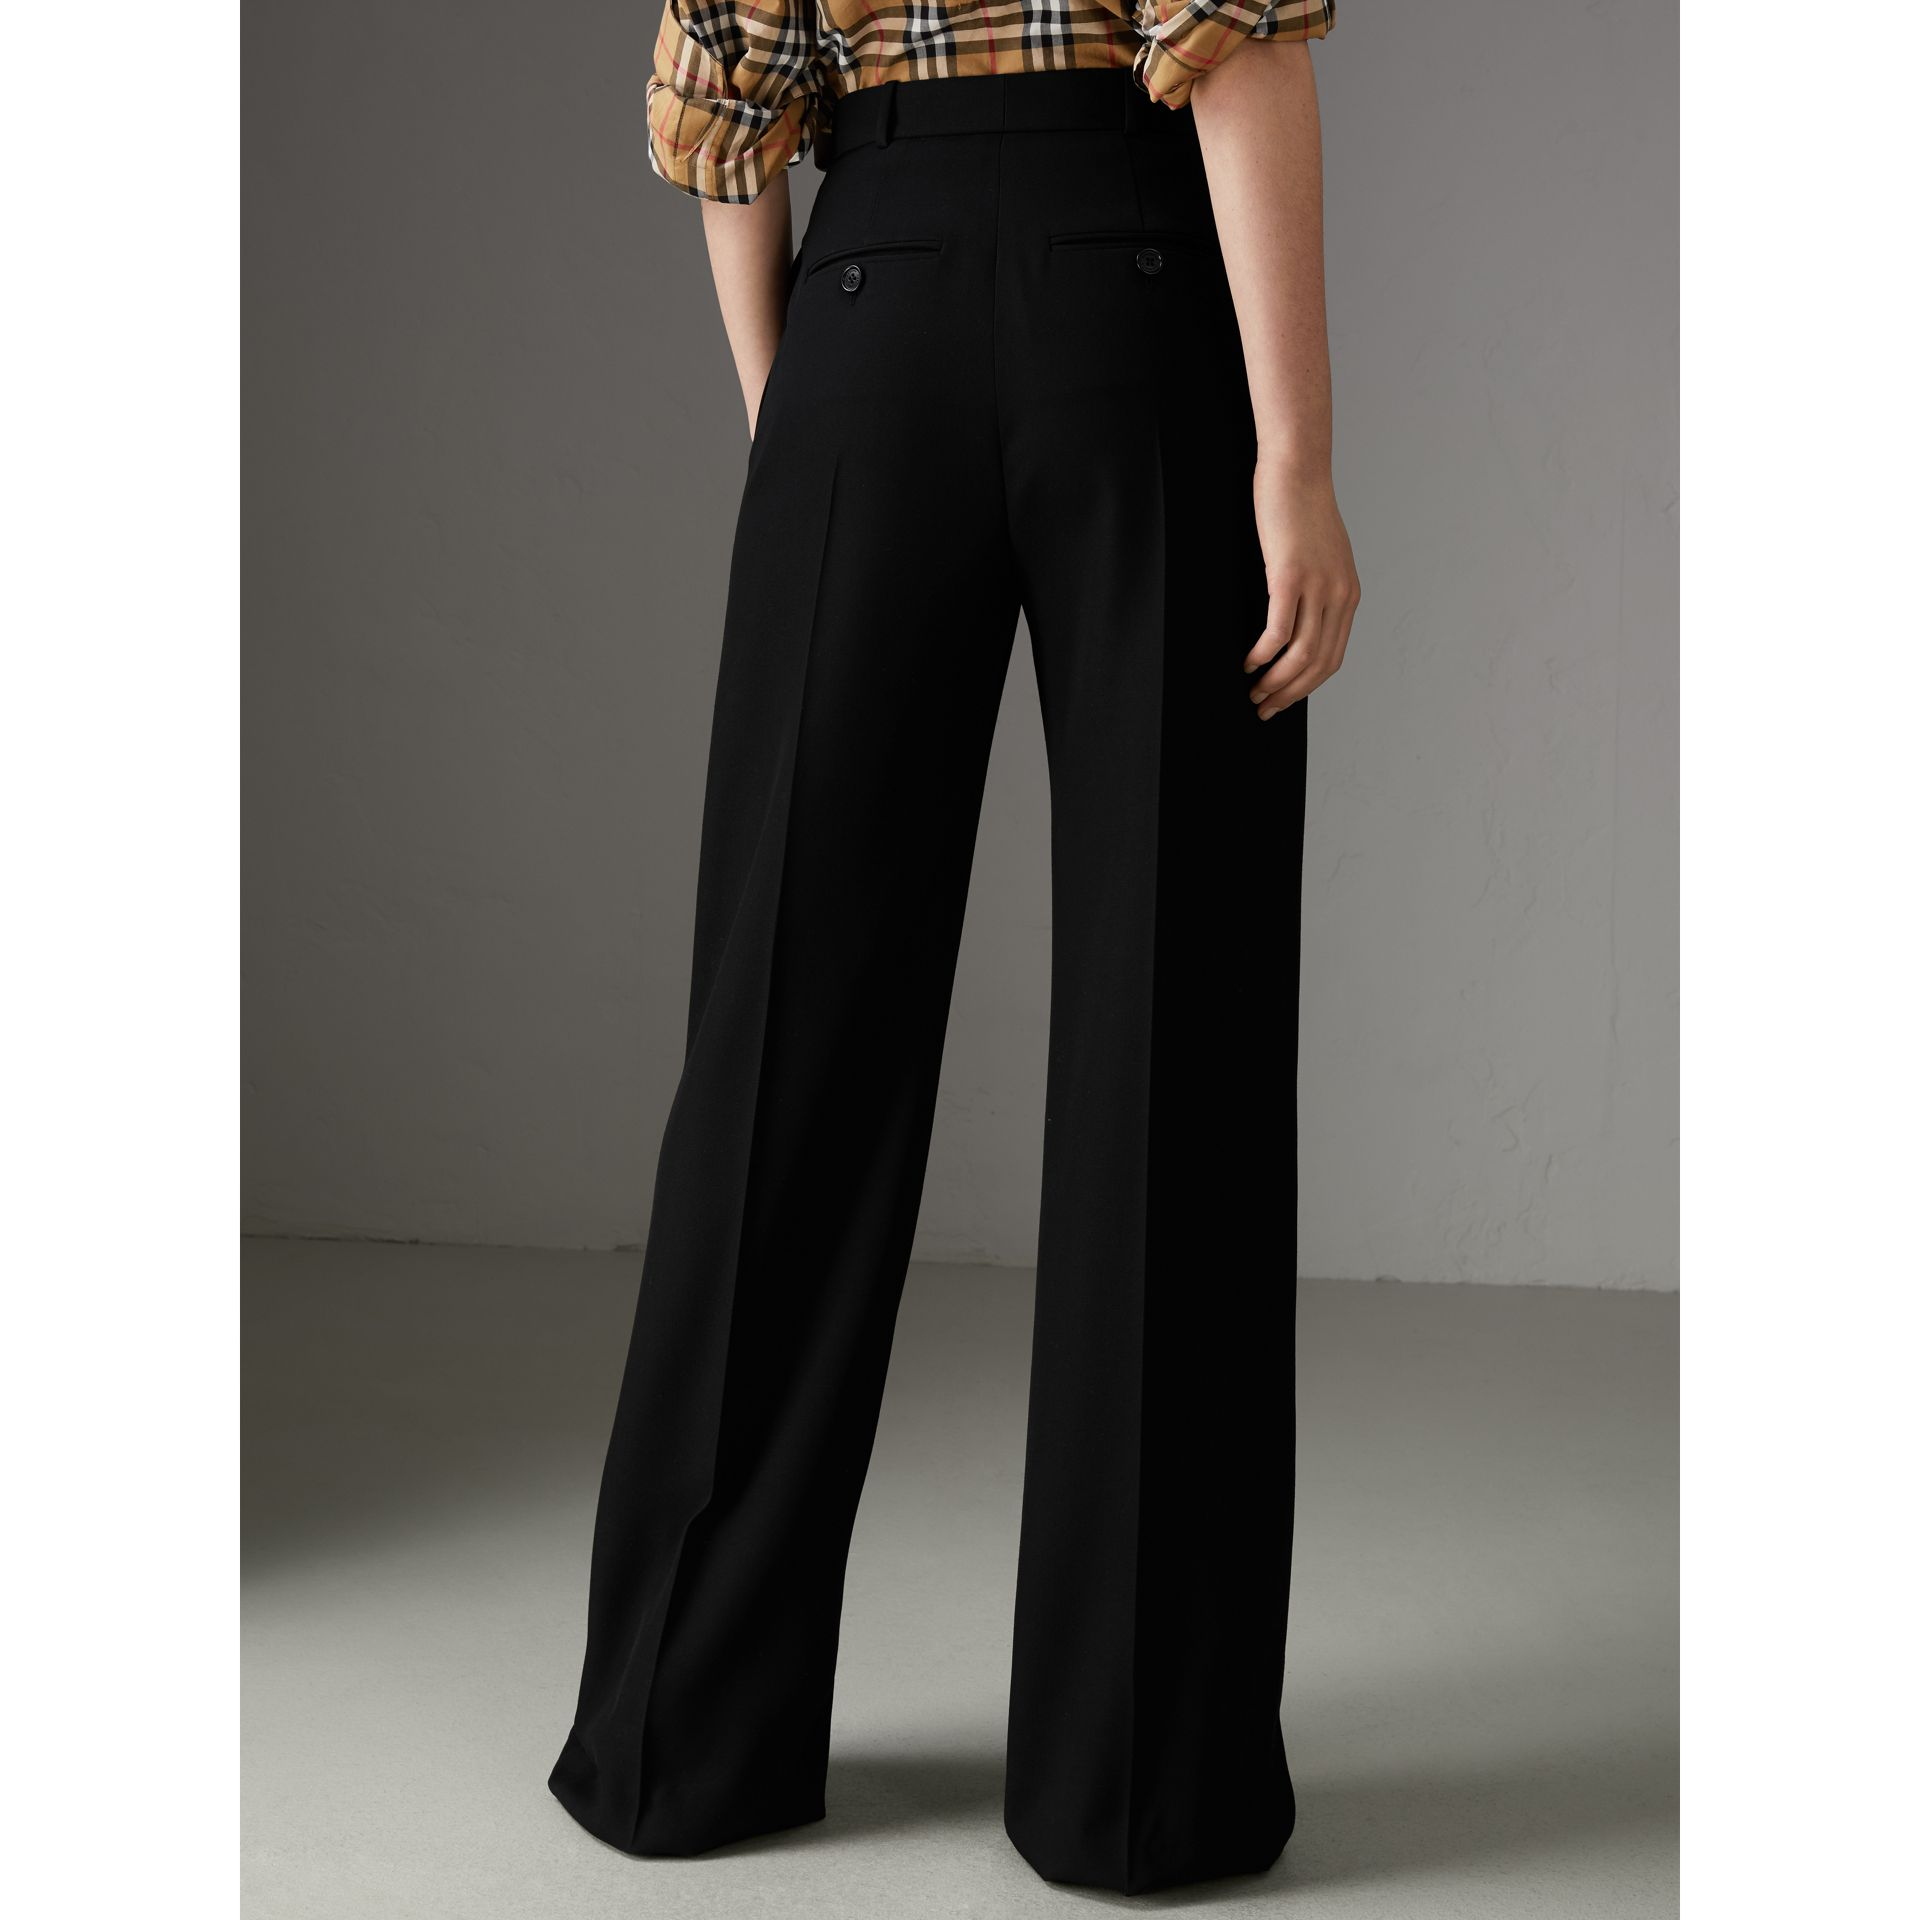 Wool High-waisted Trousers in Black - Women | Burberry - gallery image 2